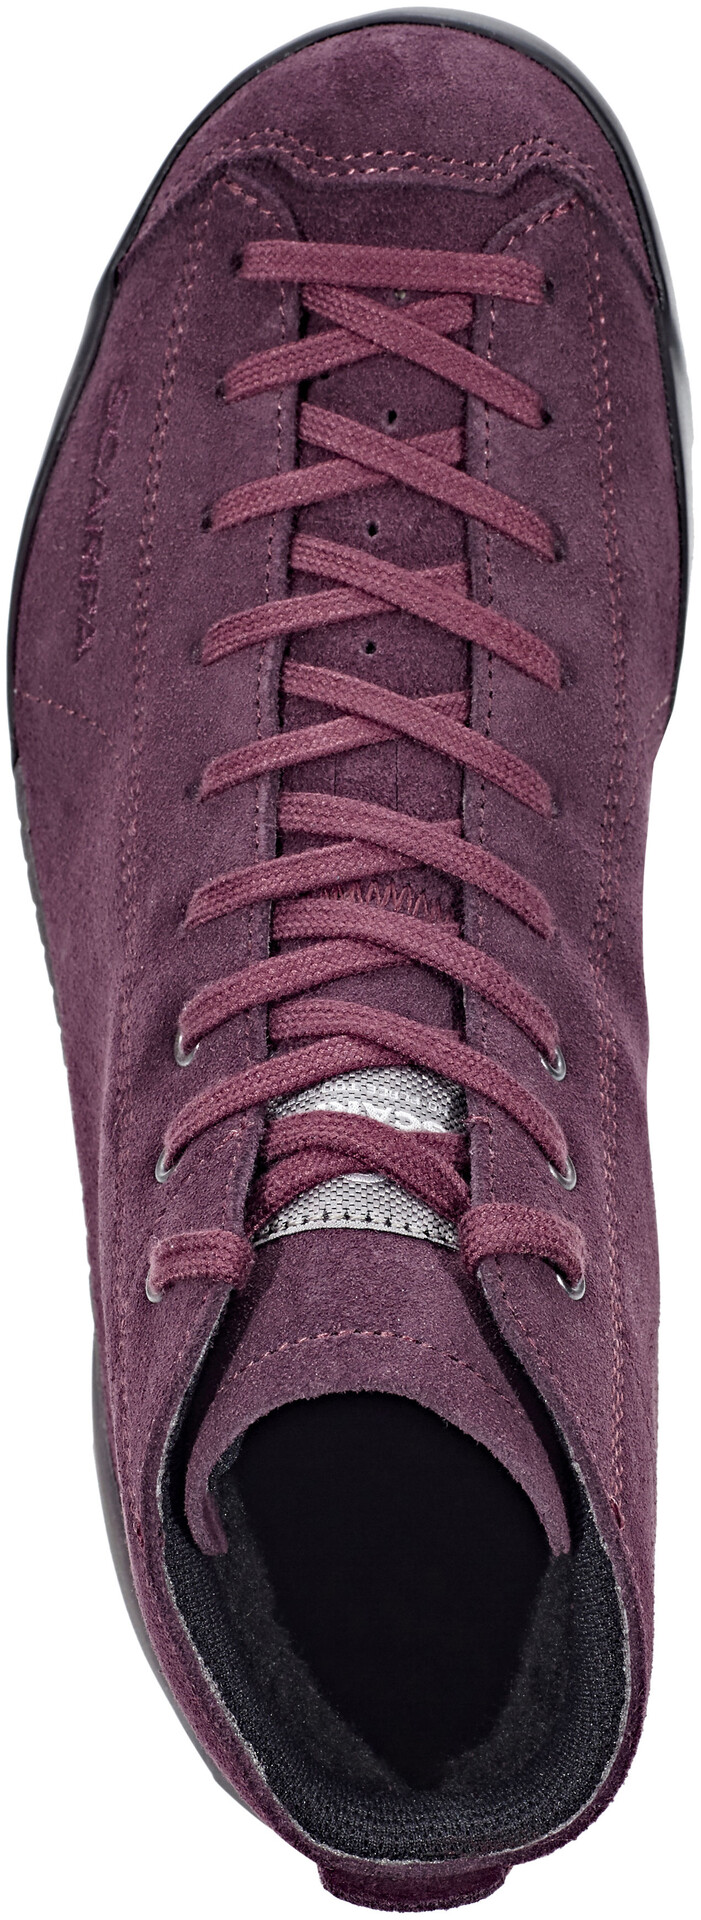 Scarpa Mojito City Mid Wool GTX Chaussures, temeraire